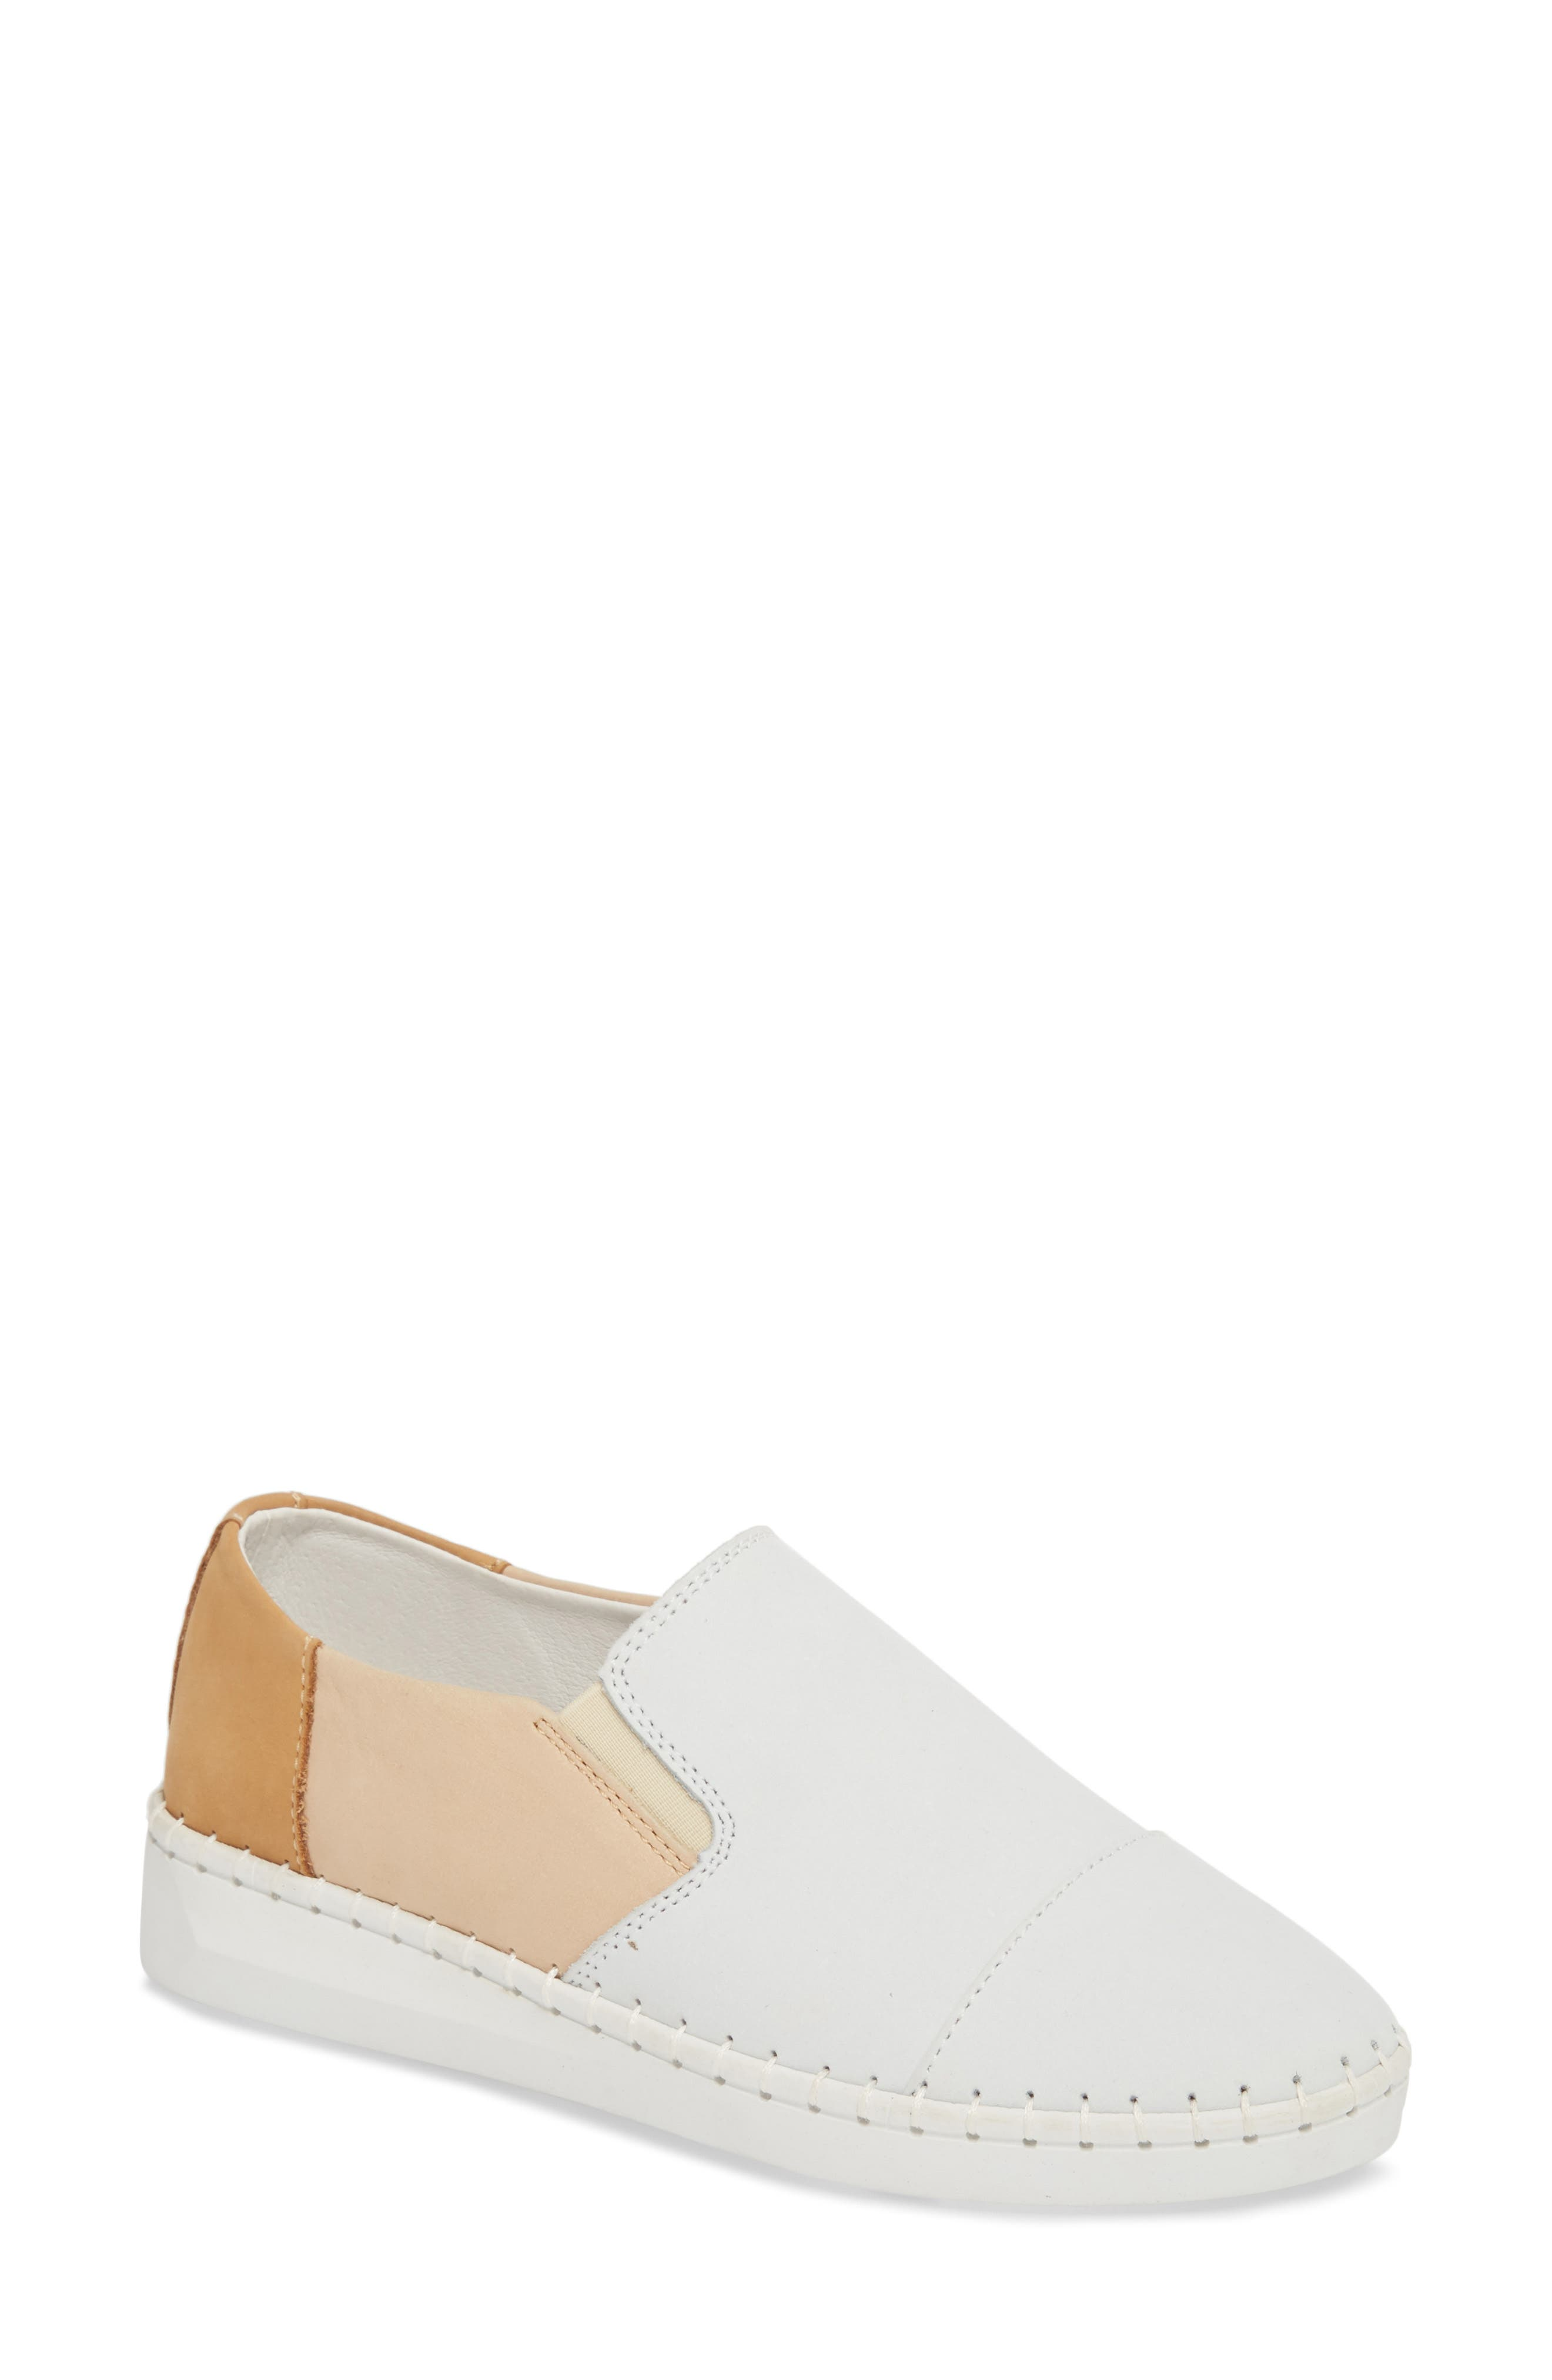 TW107 Slip-On Flat,                             Main thumbnail 1, color,                             NUDE MIX LEATHER